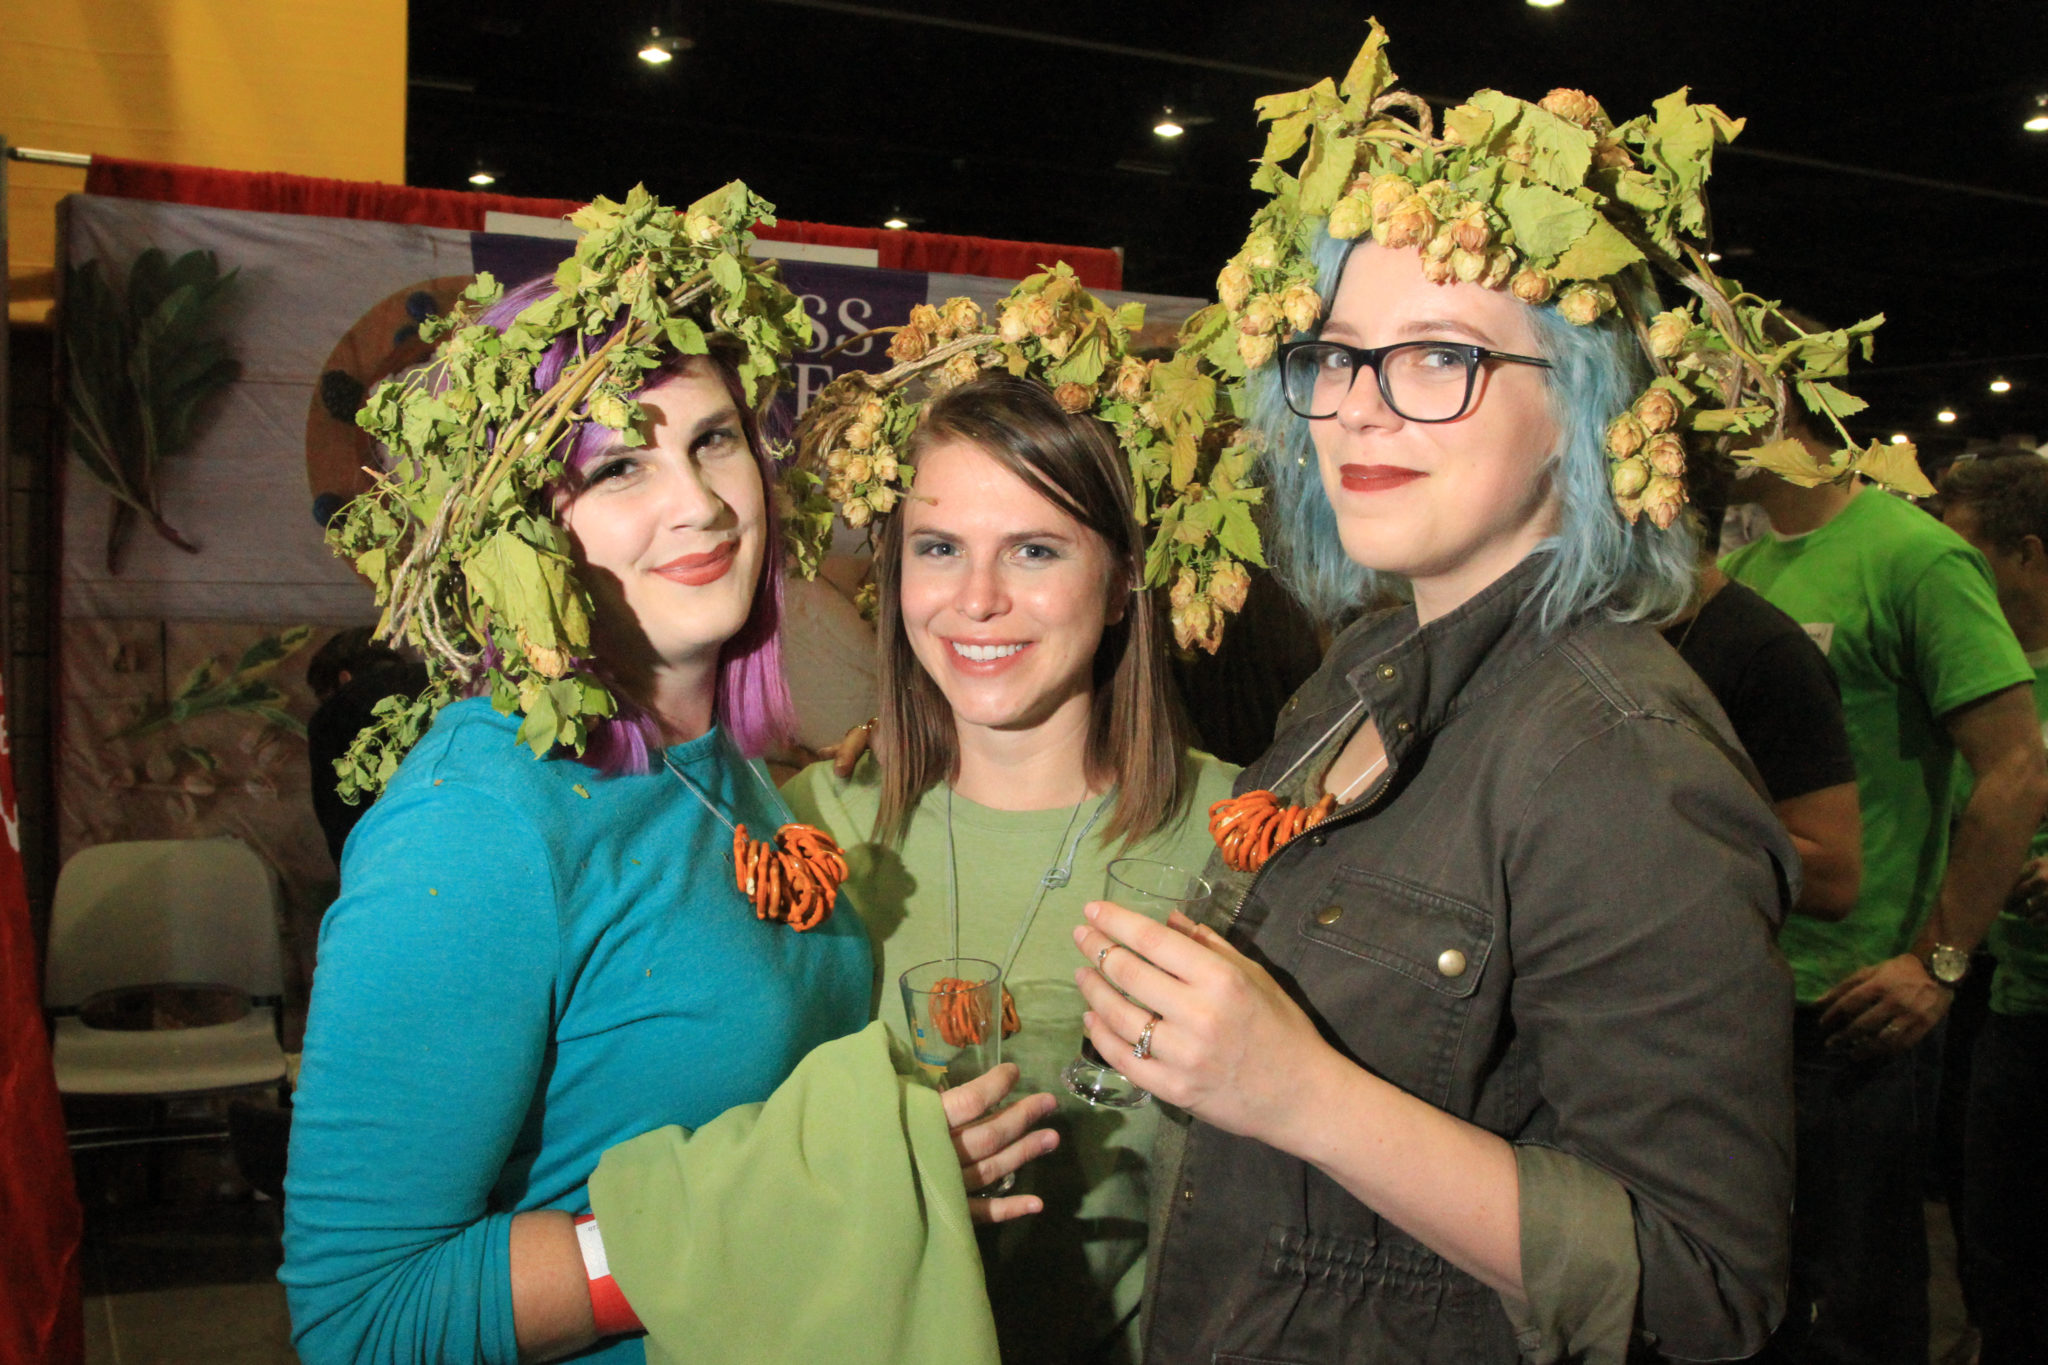 Eleni Hosack, Cheryl Fountain and Liora Dudar, of Denver, at Great American Beer Festival, Oct. 7, 2016. (Stephanie Snyder/Denverite)